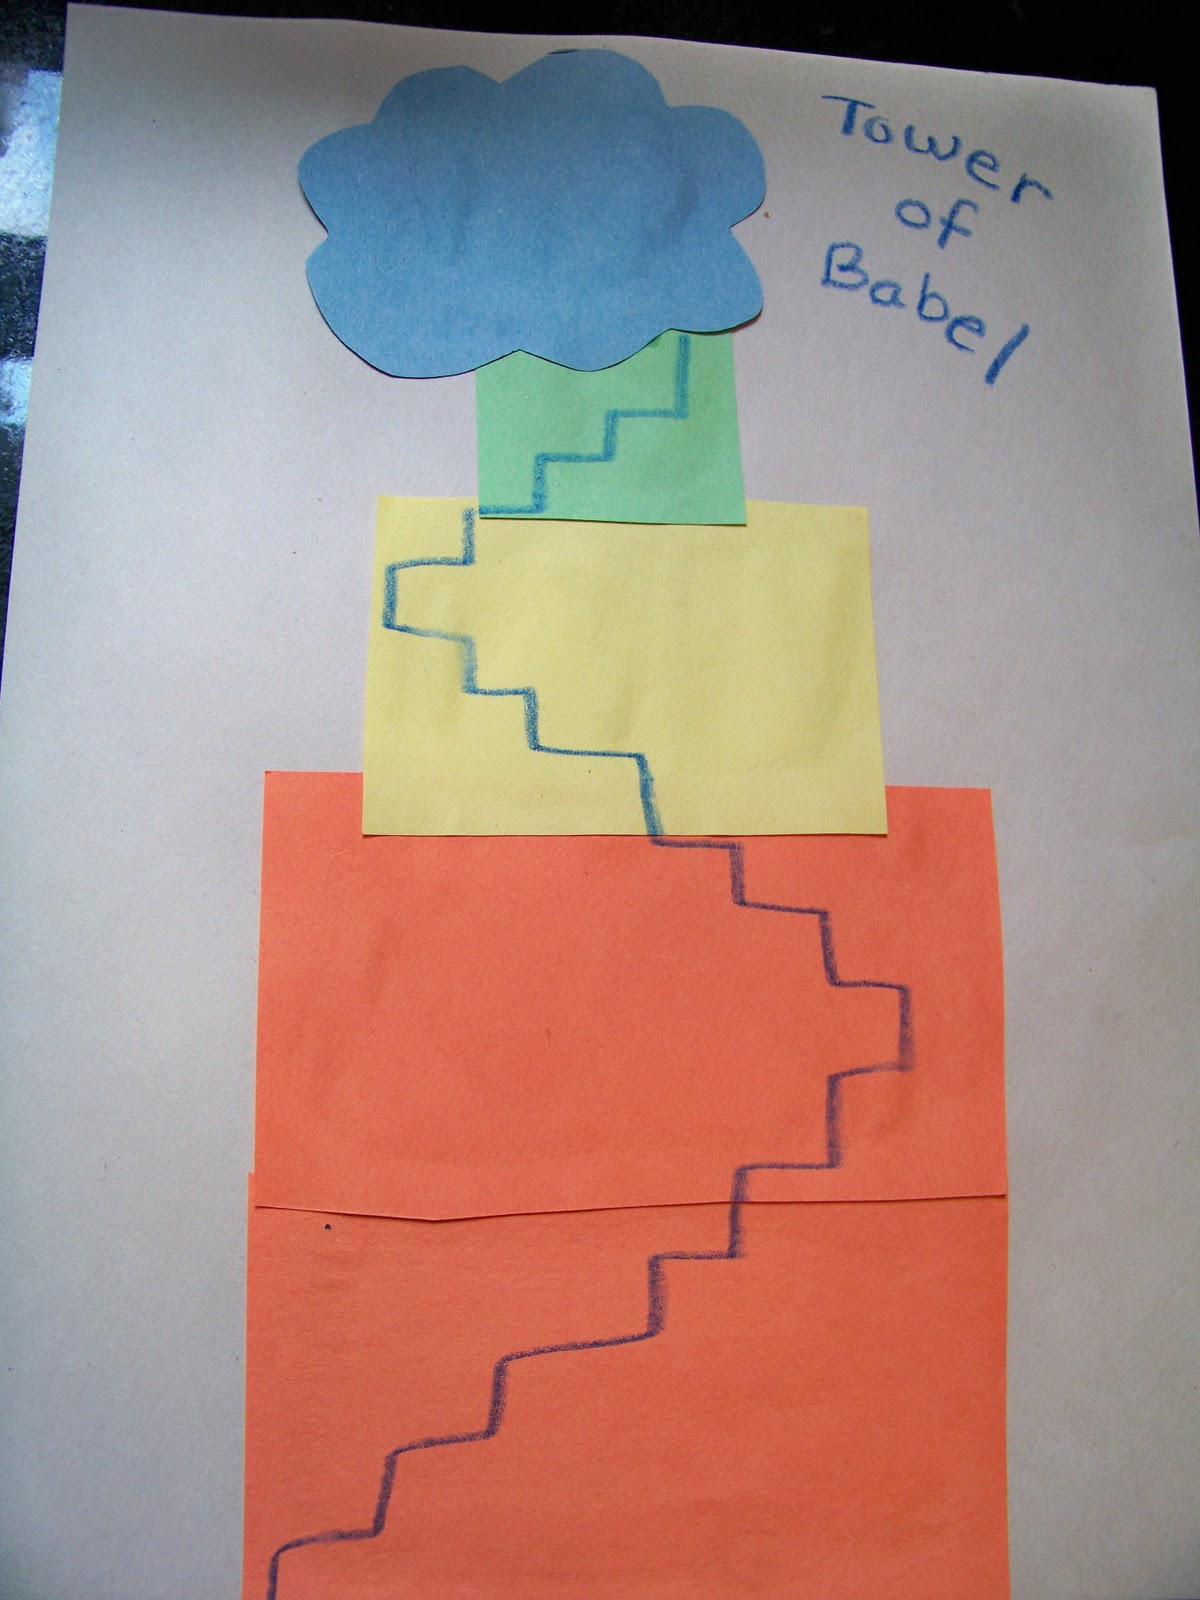 Tower Of Babel Craft Ideas http://reigningitin.blogspot.com/2010/08/jesus-storybook-bible-by-sally-lloyd.html